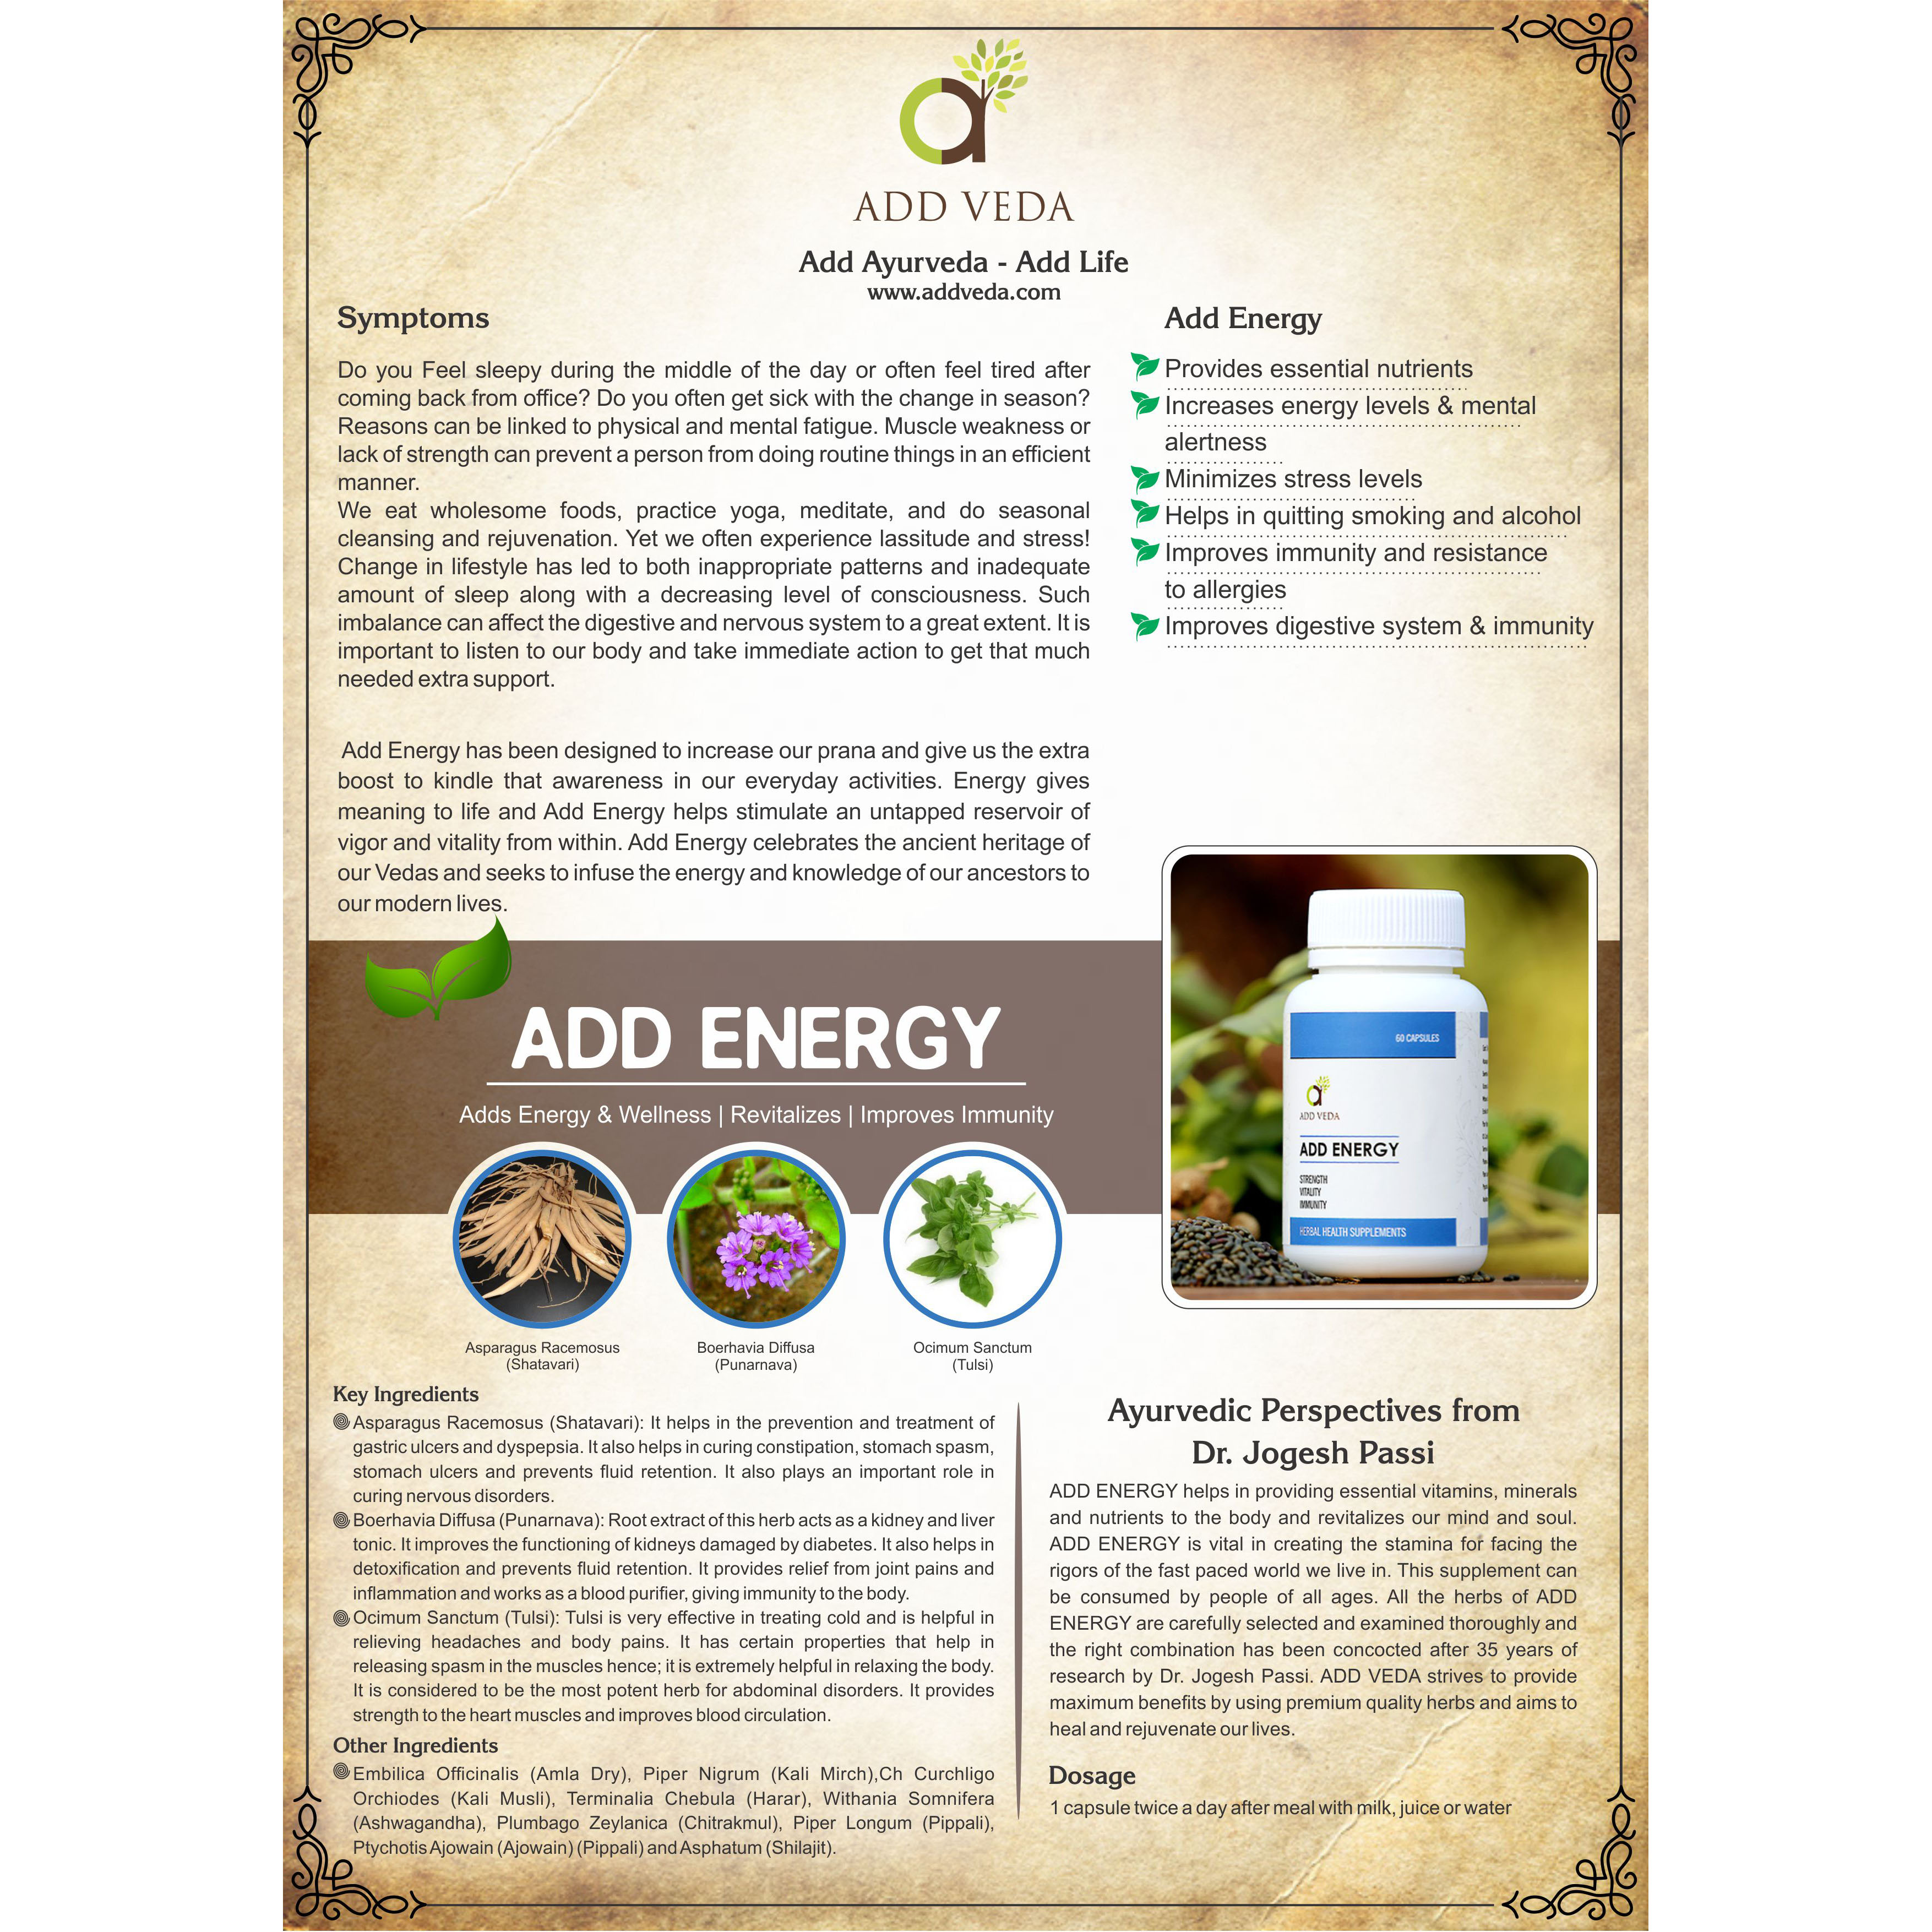 57dab3b64e56aaddveda products book final energy.jpg